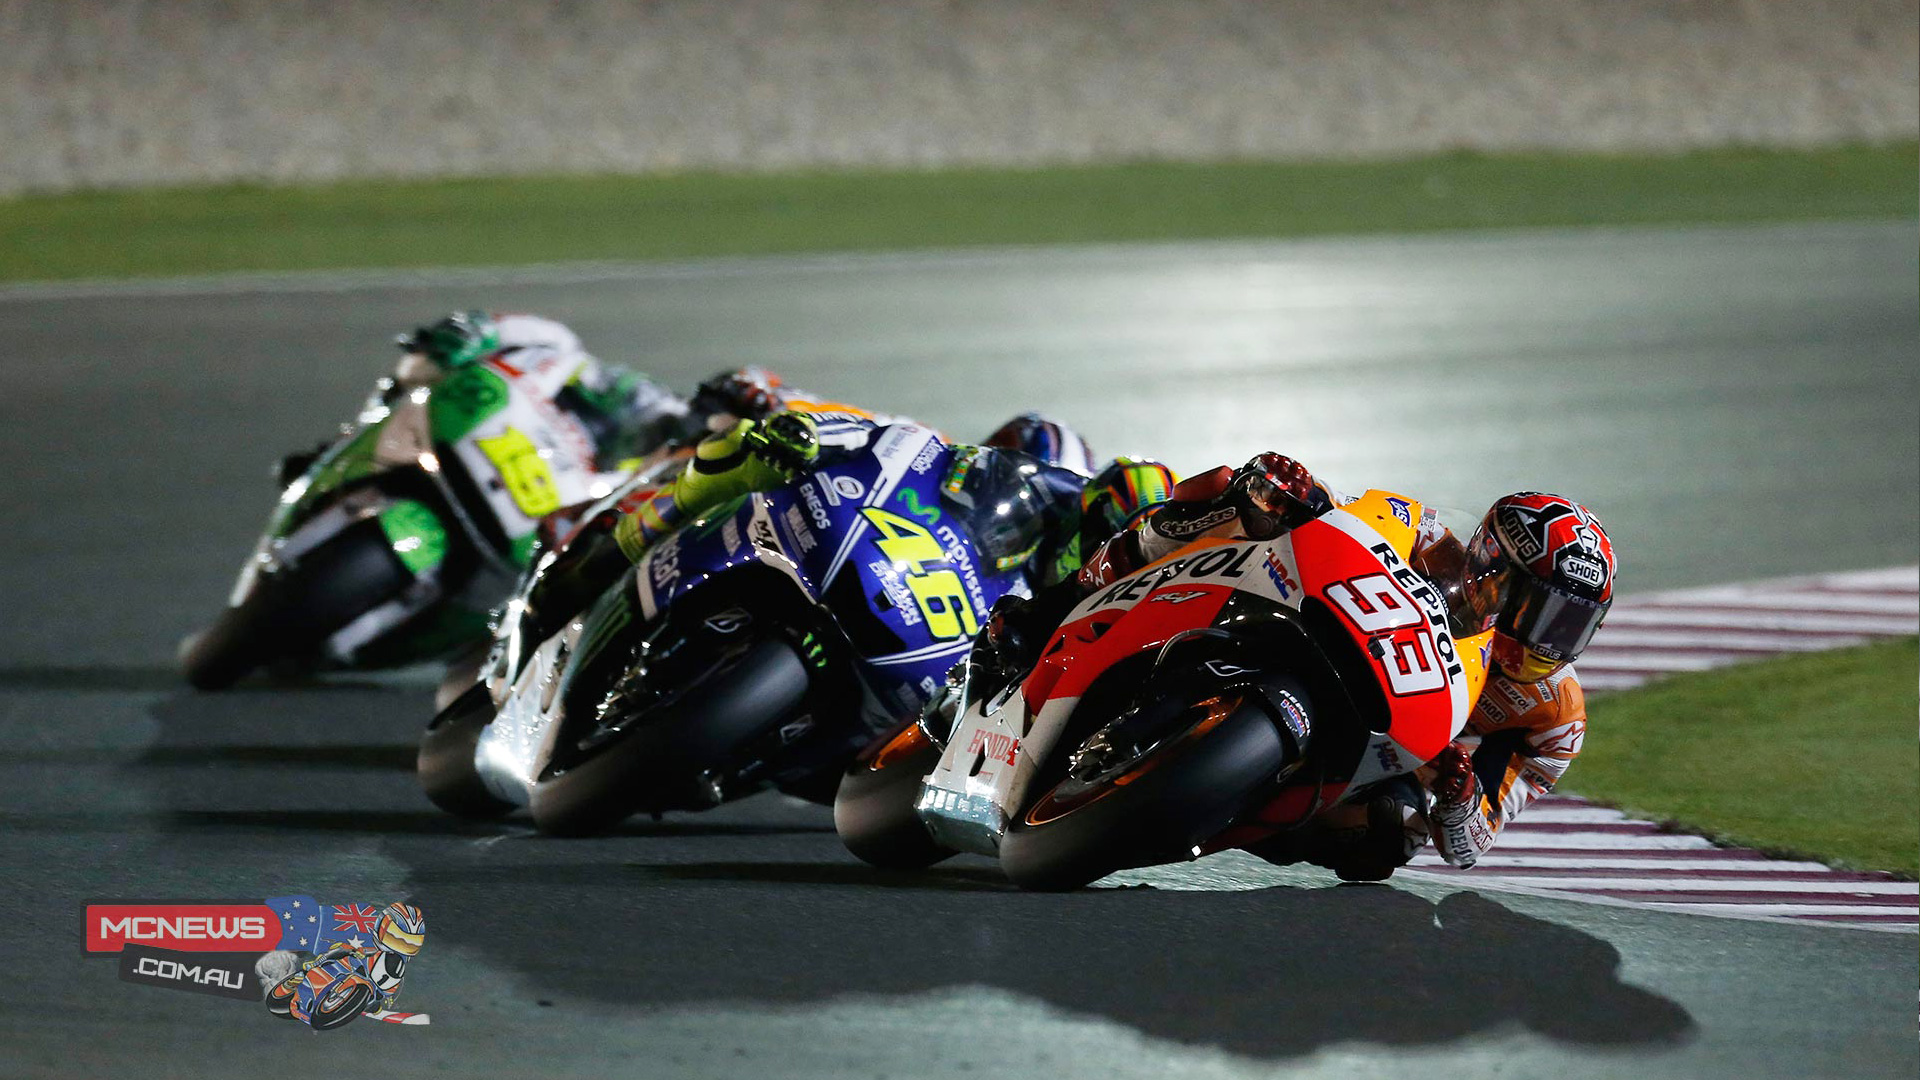 MotoGP Wallpaper HD - WallpaperSafari